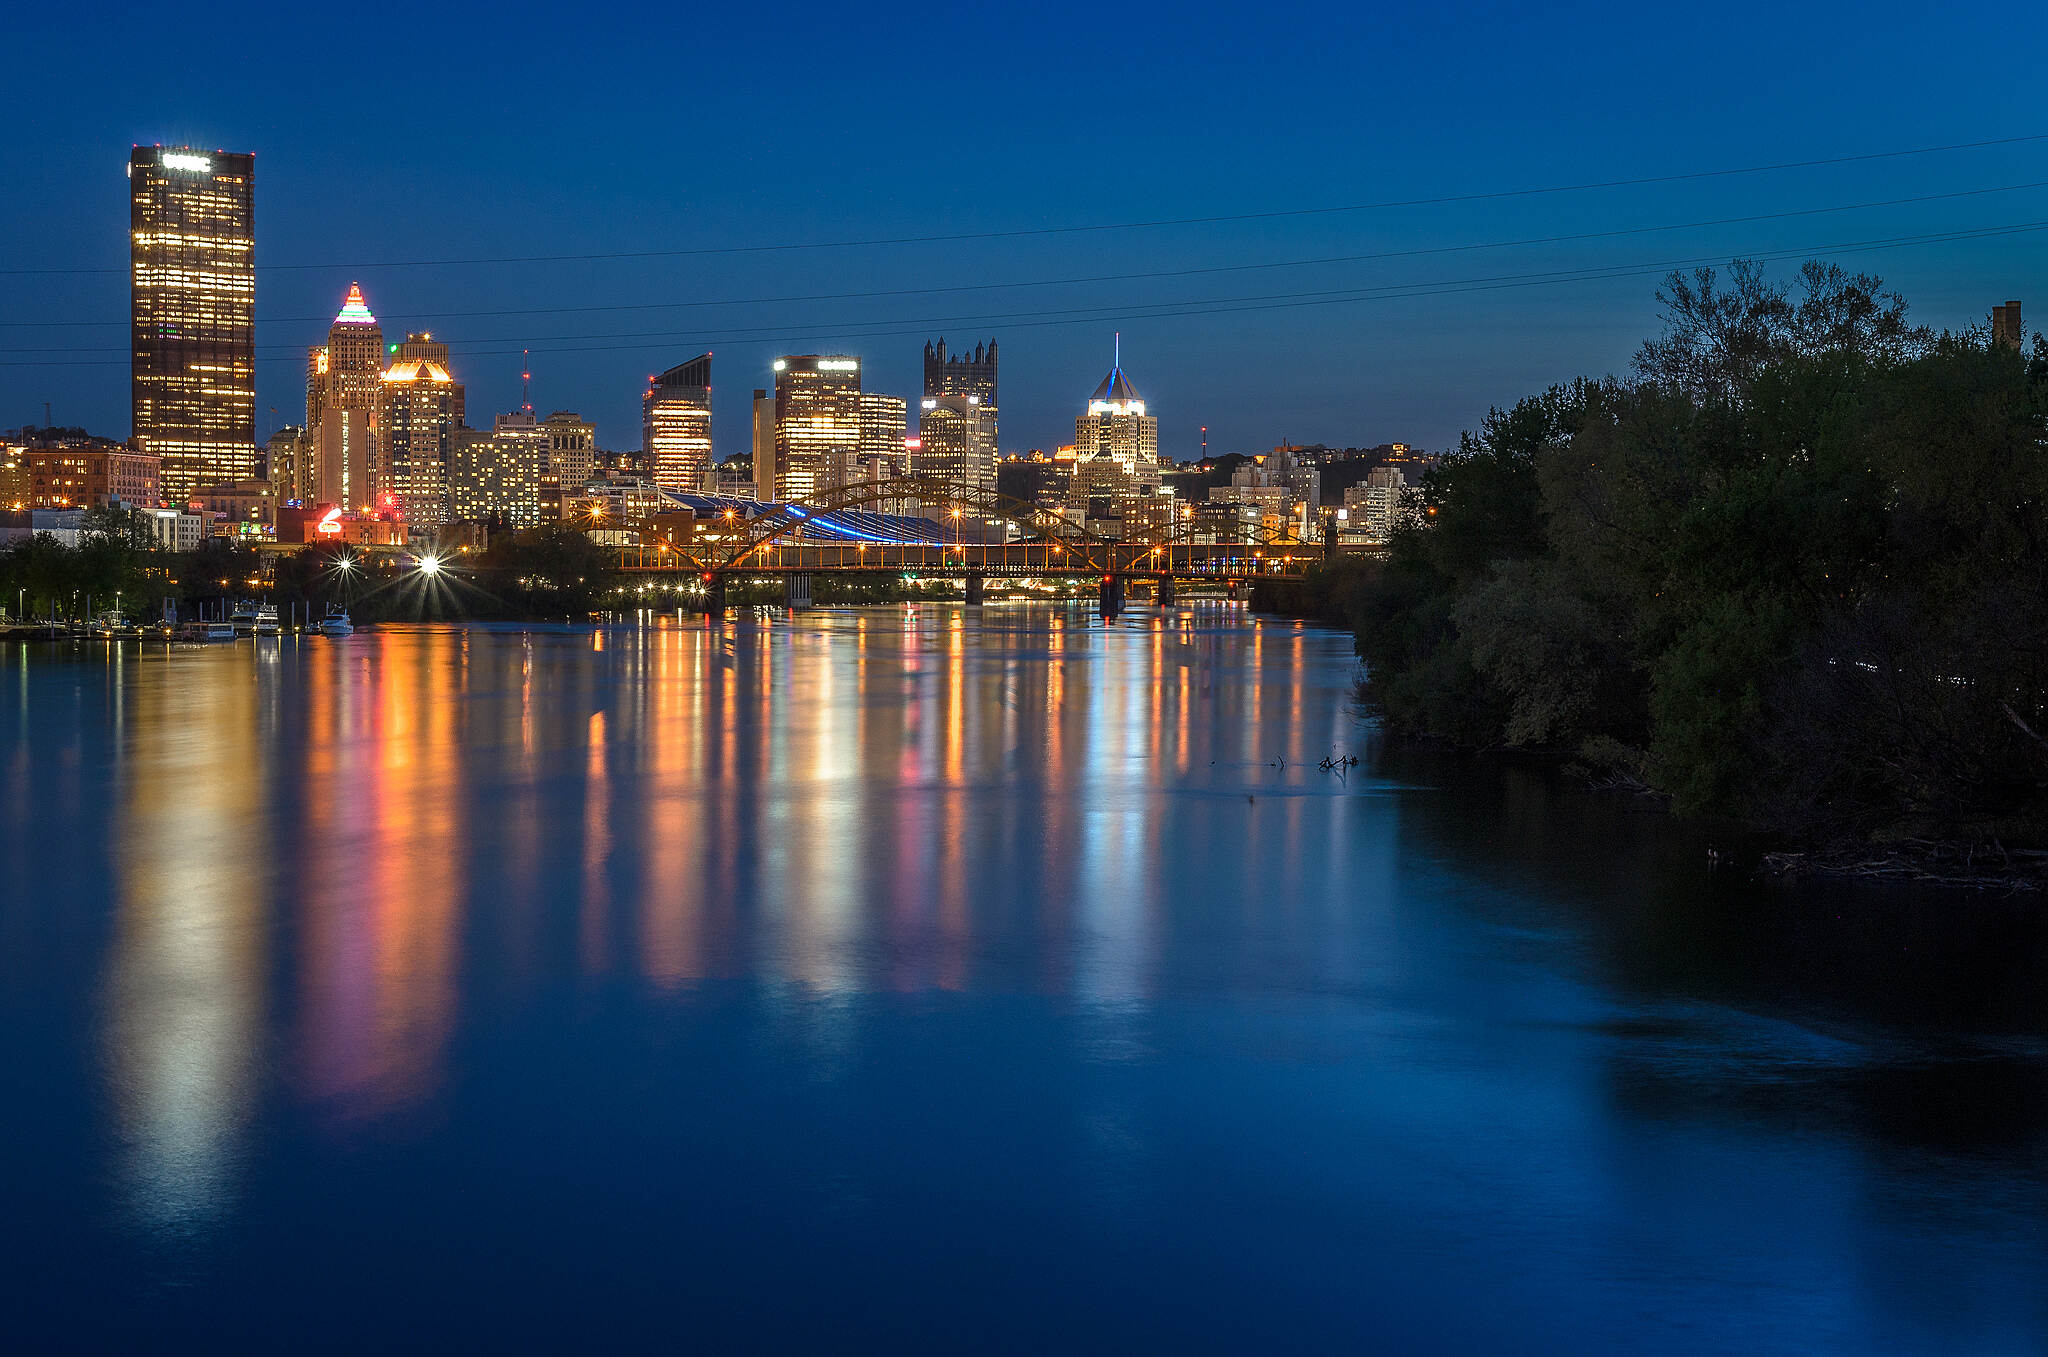 Three Rivers Heritage Trail Blue Hour From Washingtons Landing Bridge View of the City from the Bridge along the trail that take you to Washington's Landing